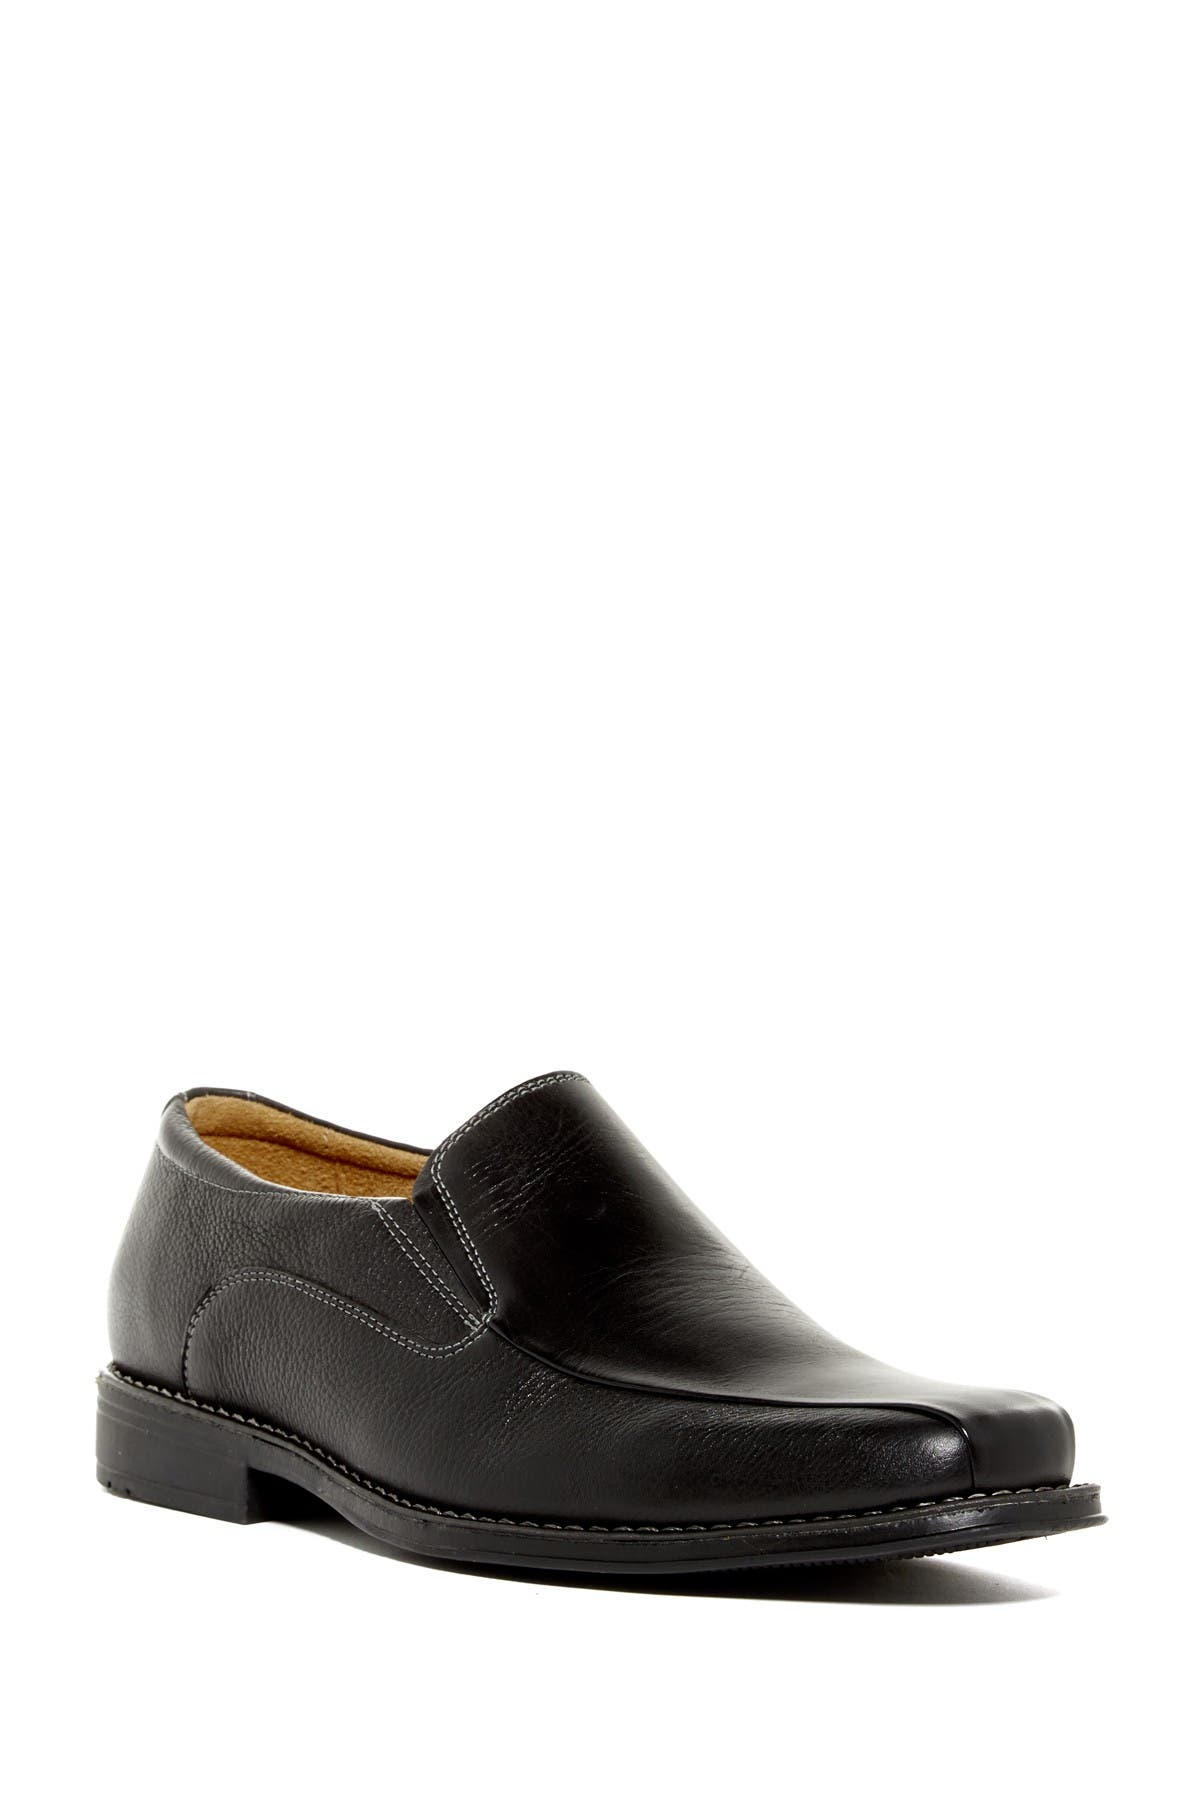 Image of Sandro Moscoloni Edwin Loafer - Extra Wide Width Available